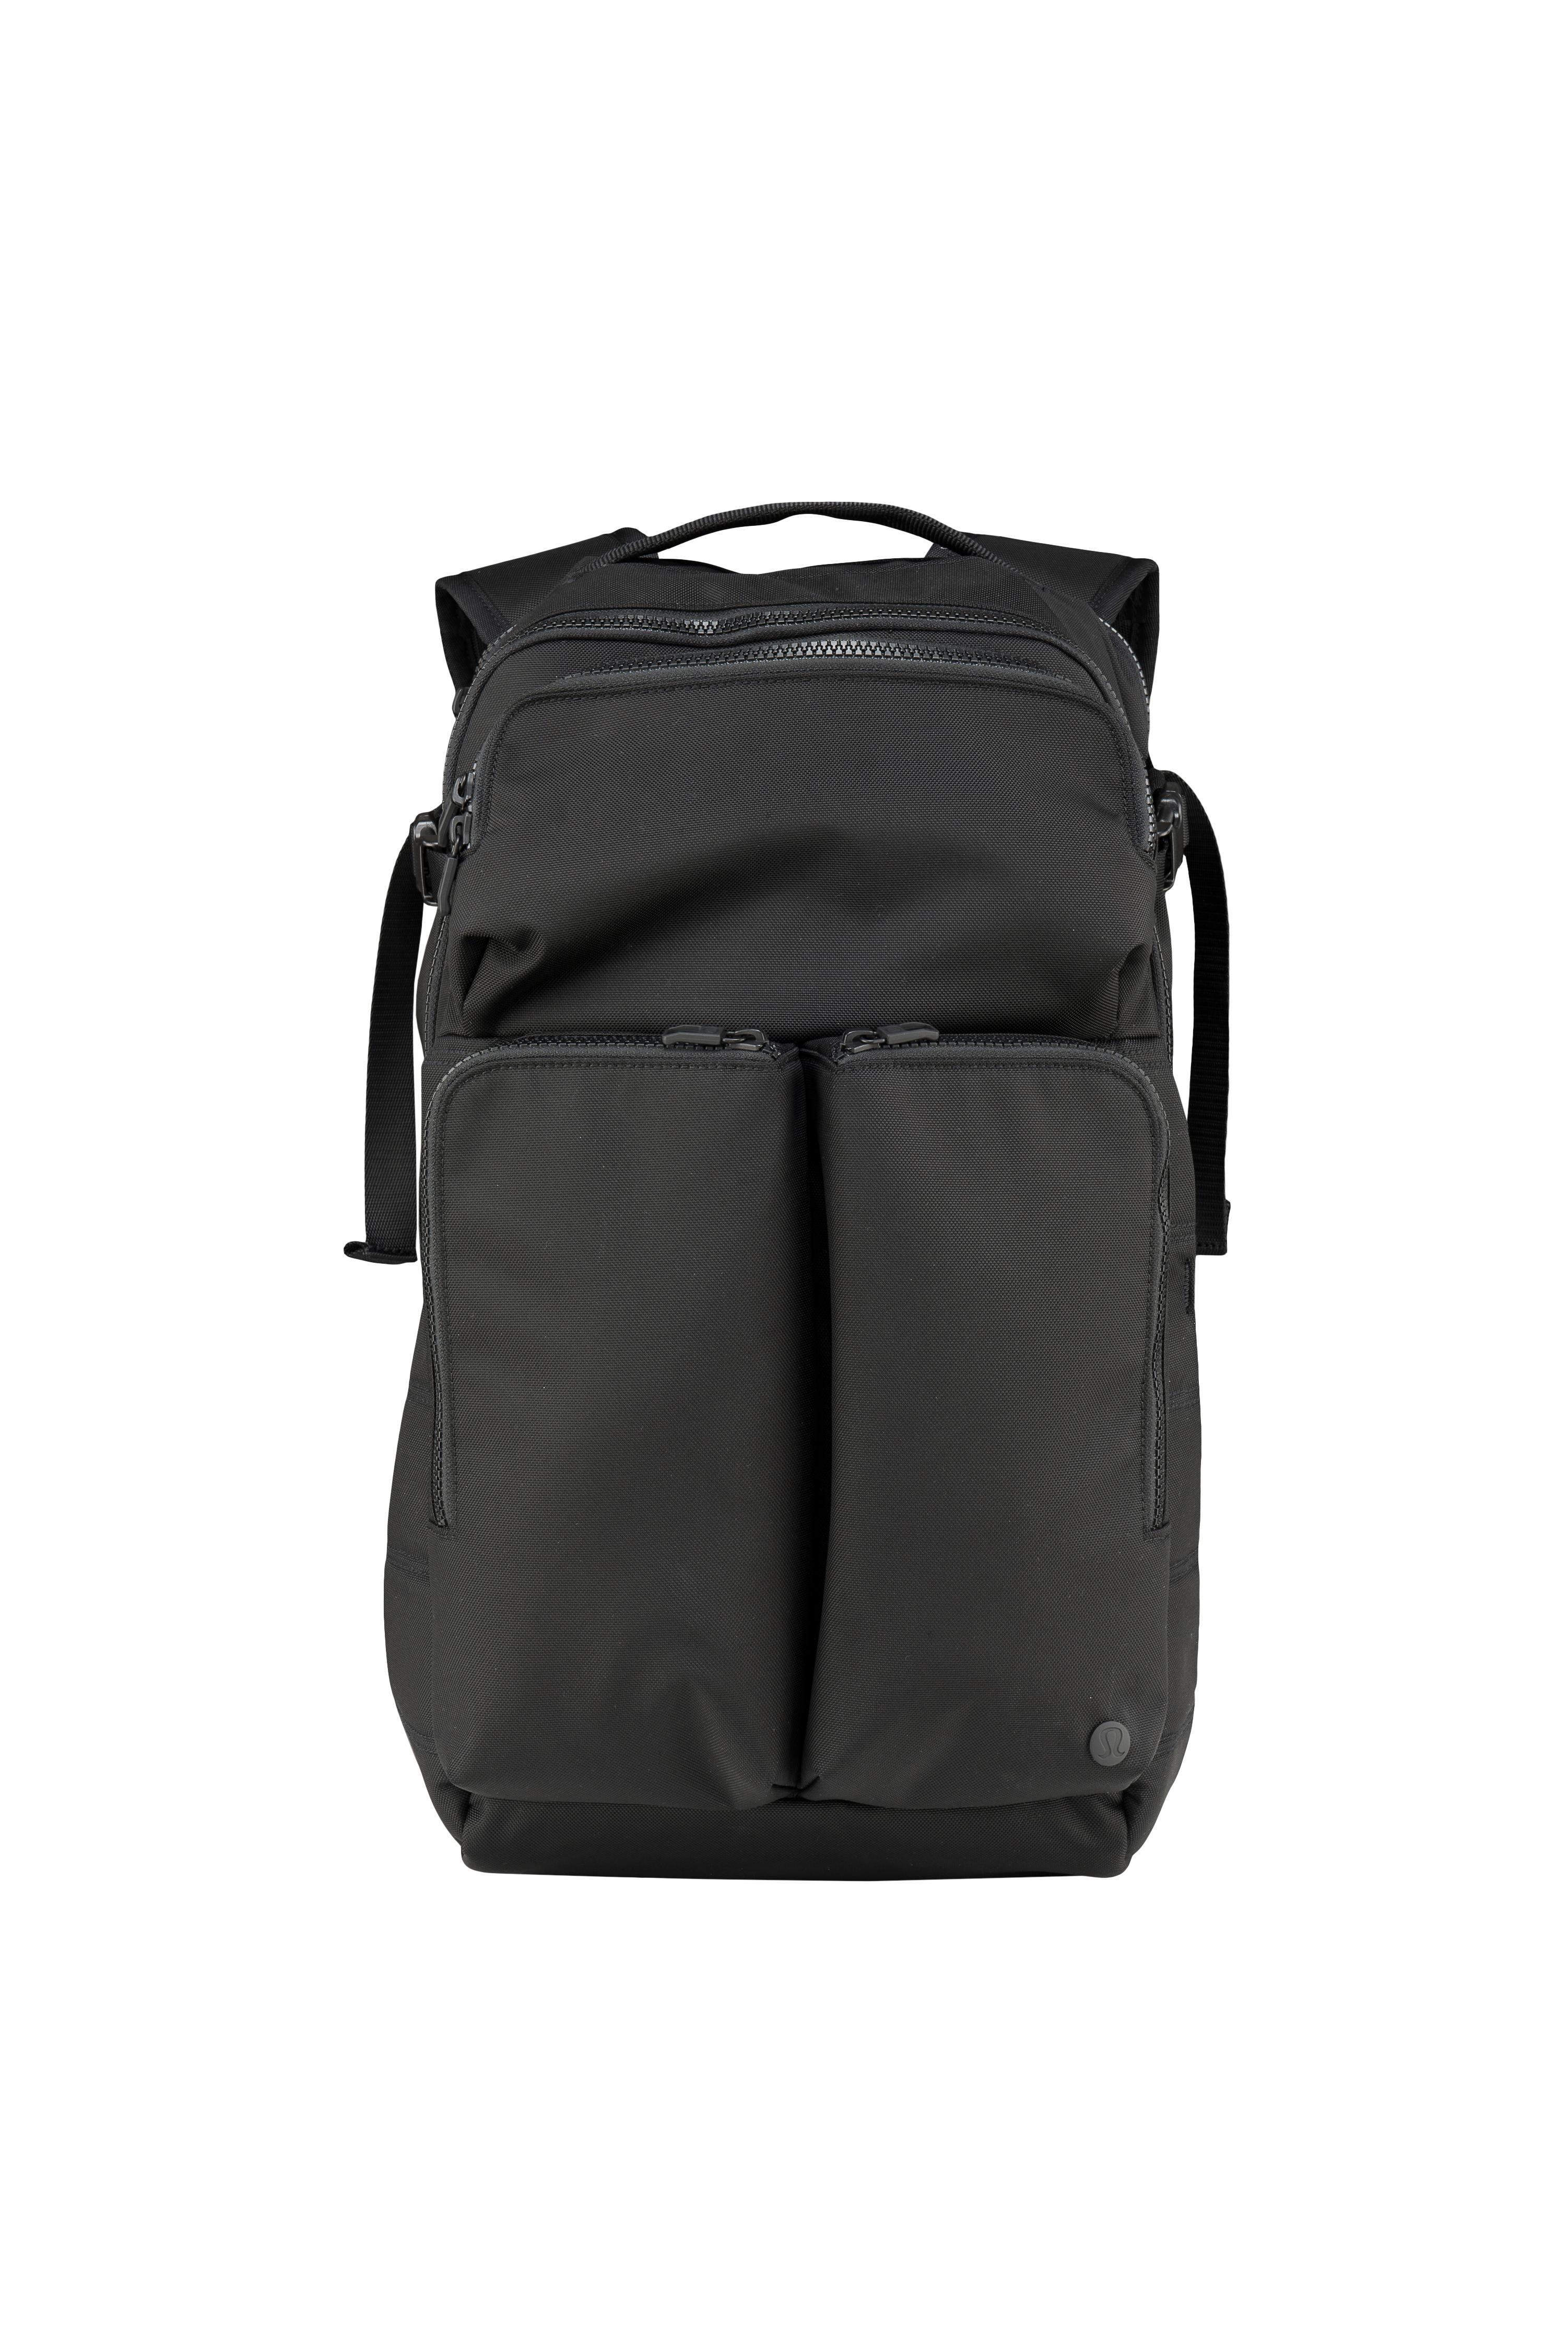 Lululemon Assert Backpack // Price: $148 // (Image: Lululemon){&amp;nbsp;}<p></p>